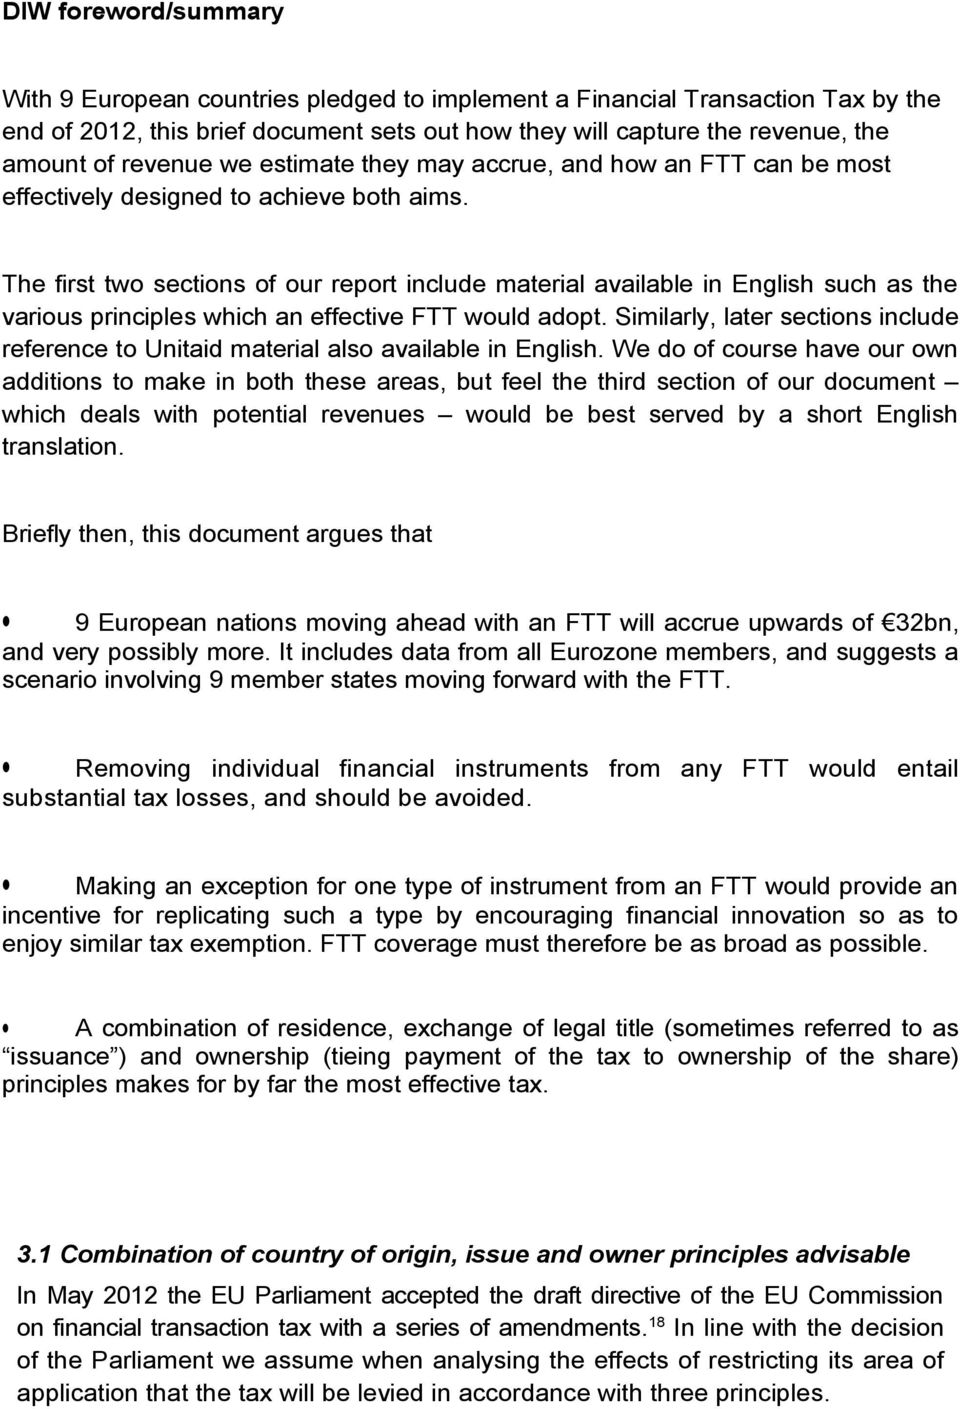 The first two sections of our report include material available in English such as the various principles which an effective FTT would adopt.